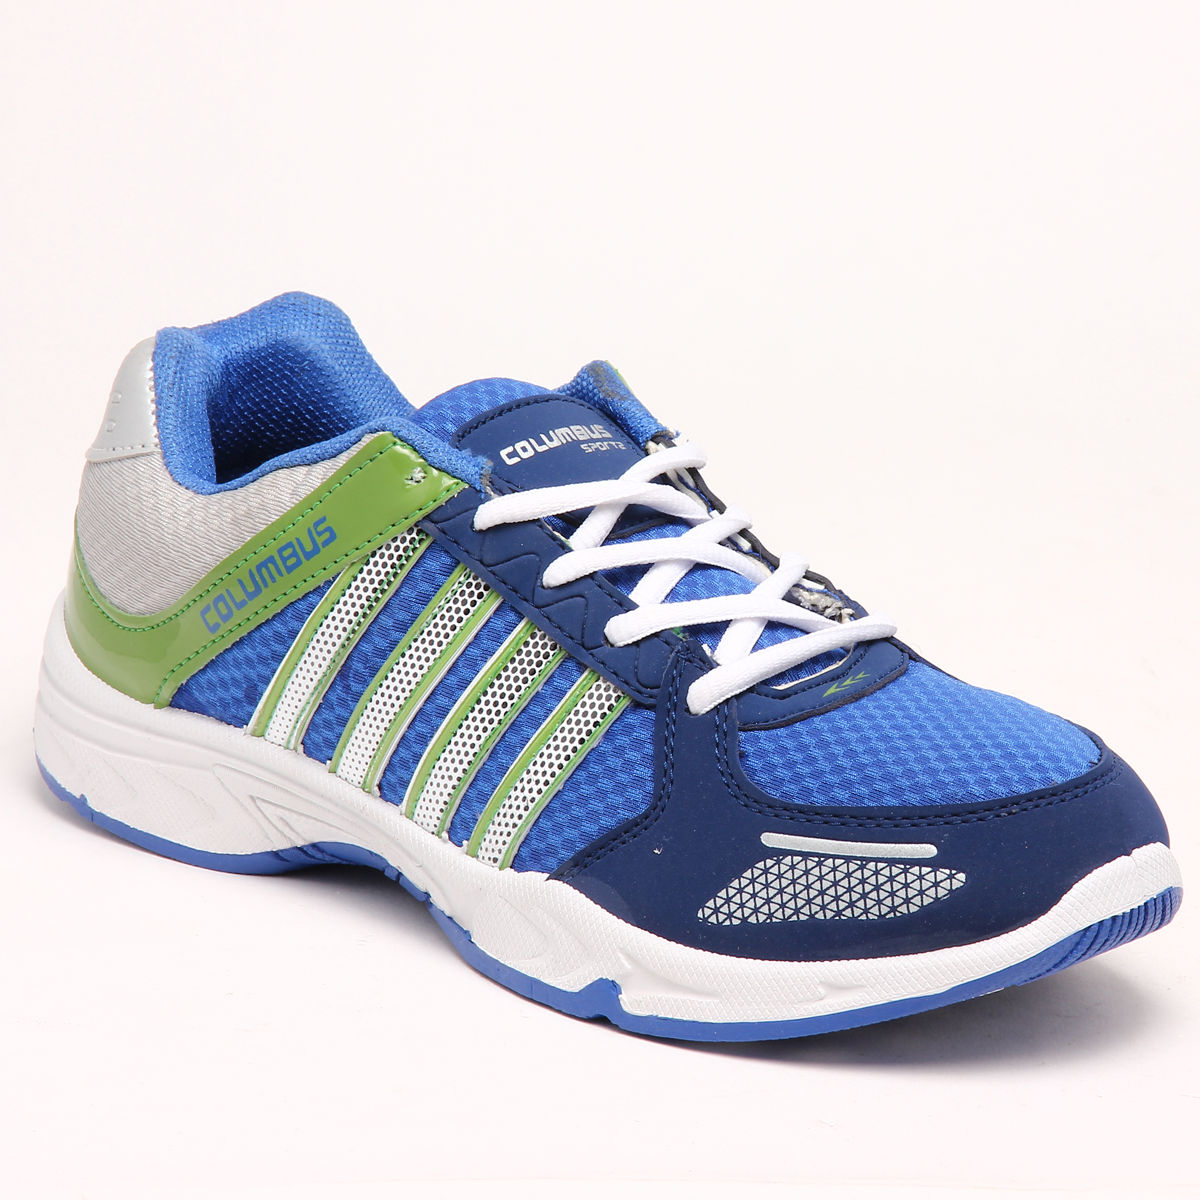 Cheap shoes online. Buy athletic shoes online